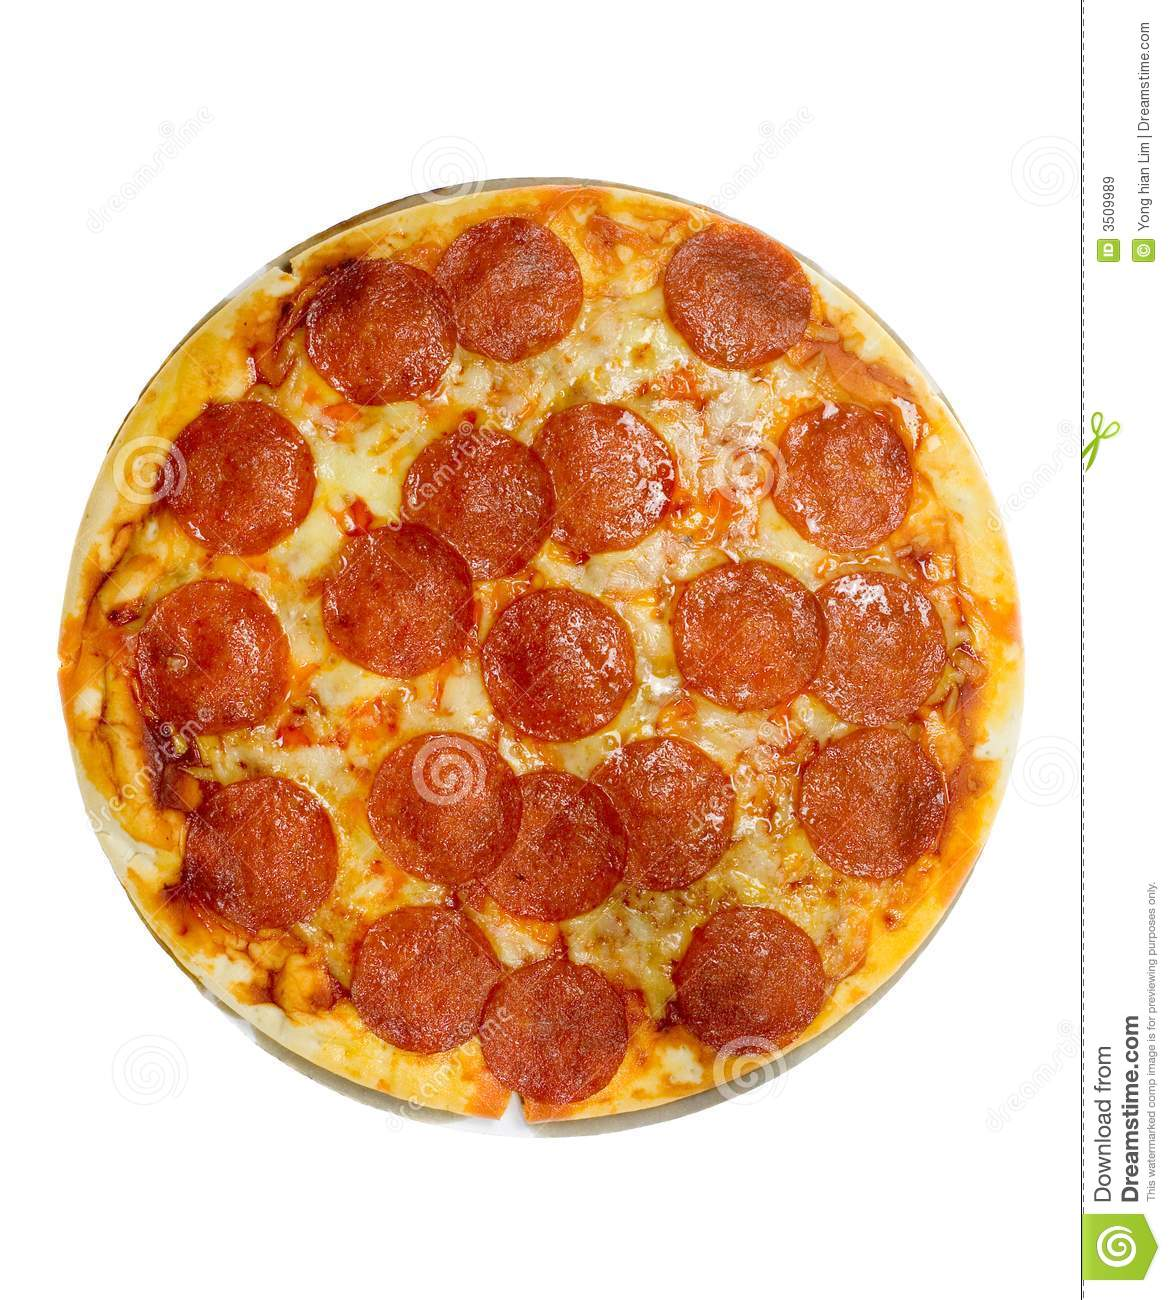 Pepperoni And Cheese Pizza Stock Image. Image Of Toppings